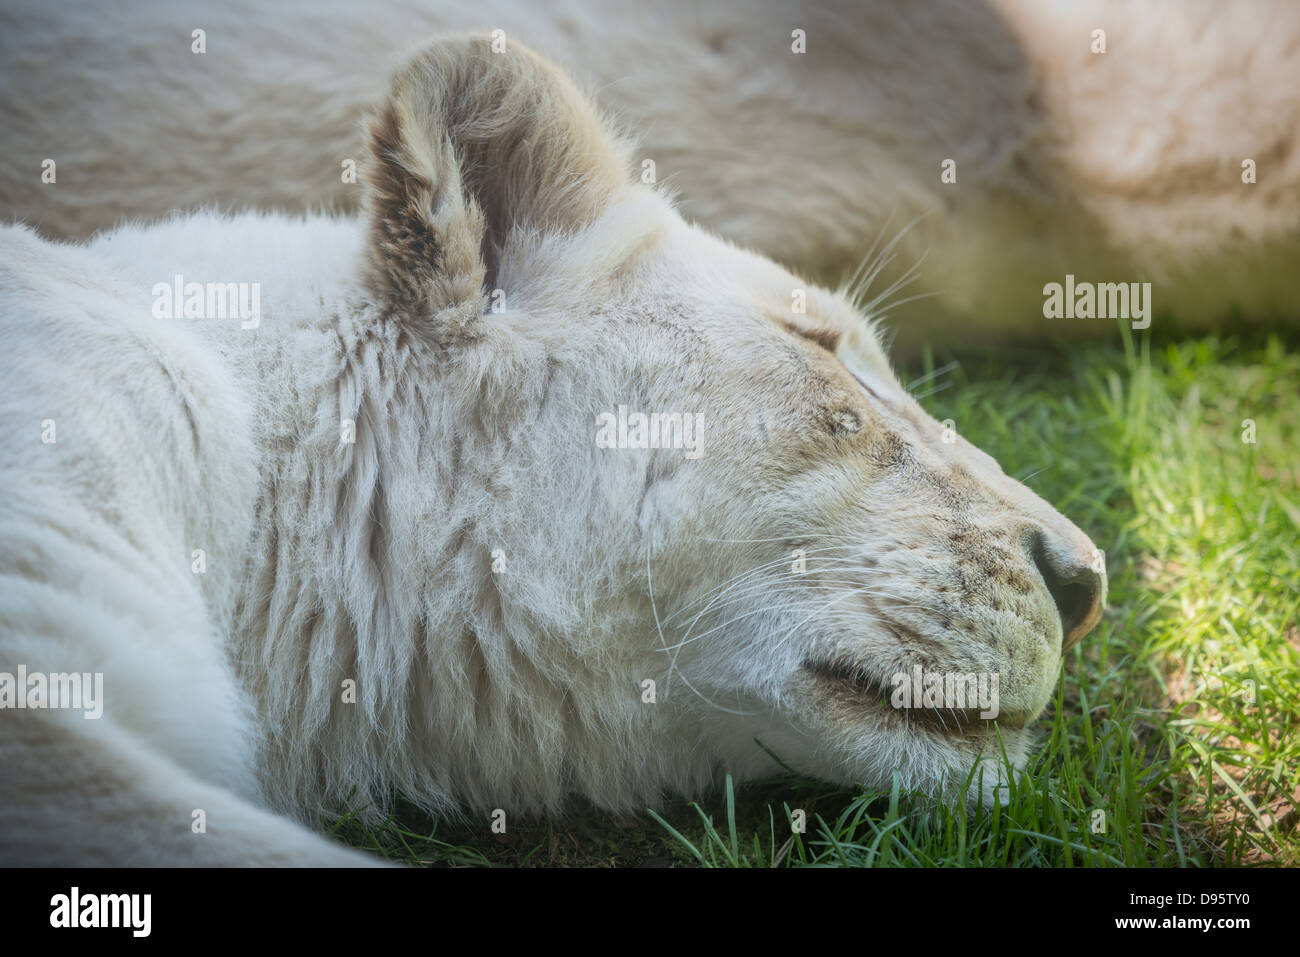 White Lion (Panterha leo krugeri) sleeps. A close up of a head on a grassy ground. - Stock Image